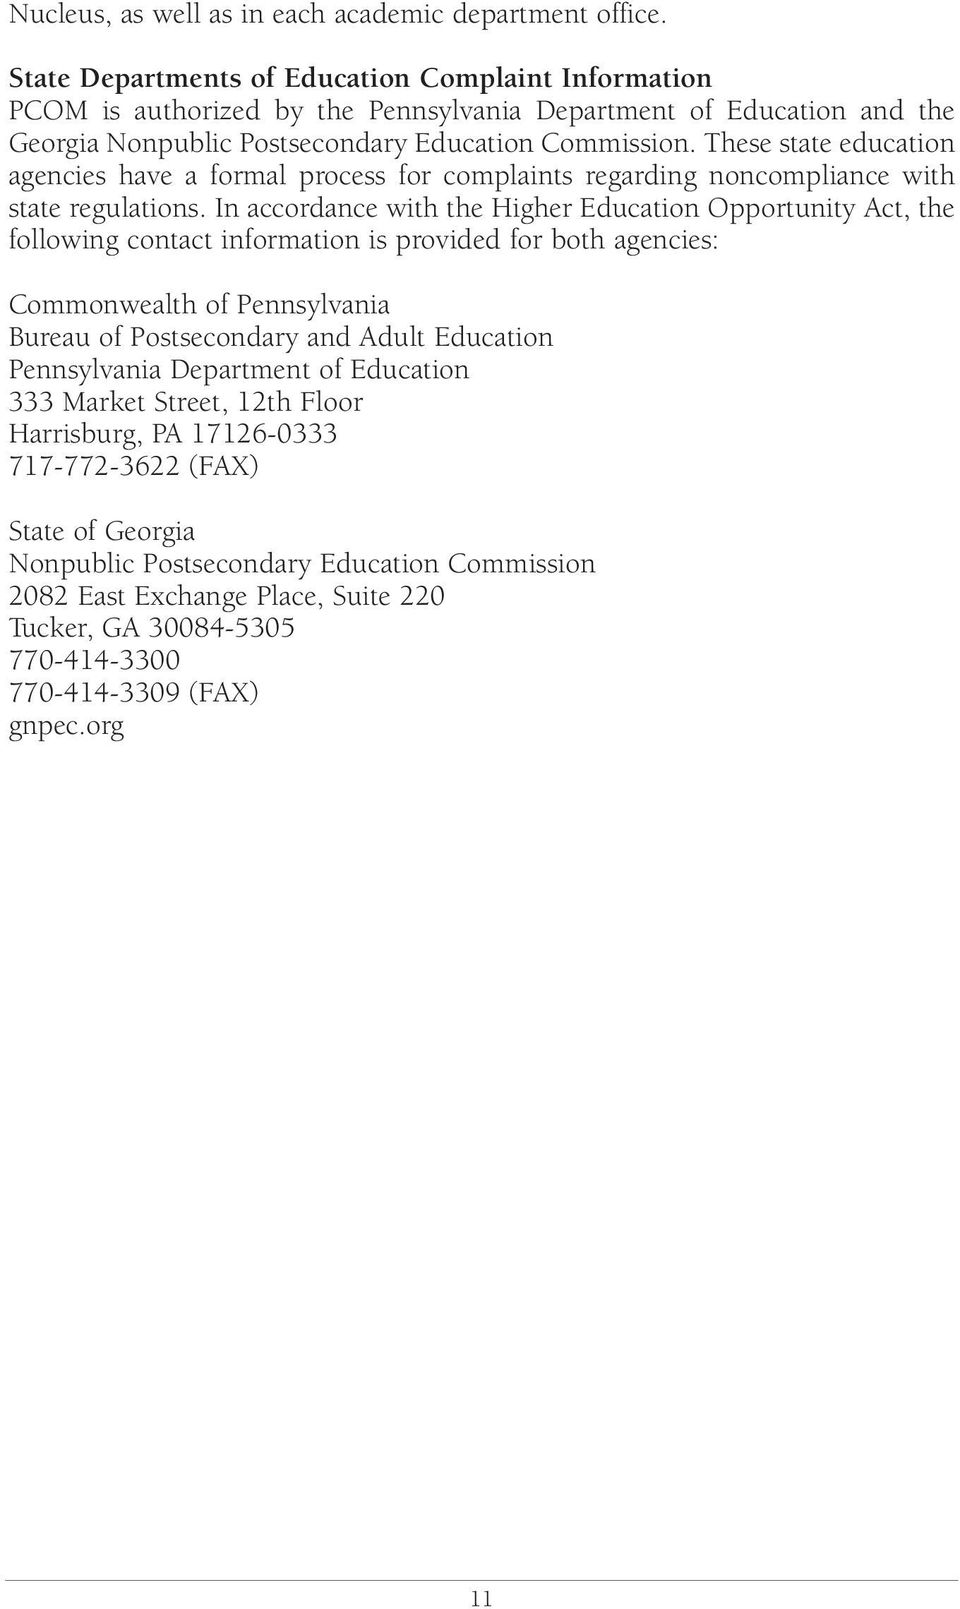 These state education agencies have a formal process for complaints regarding noncompliance with state regulations.